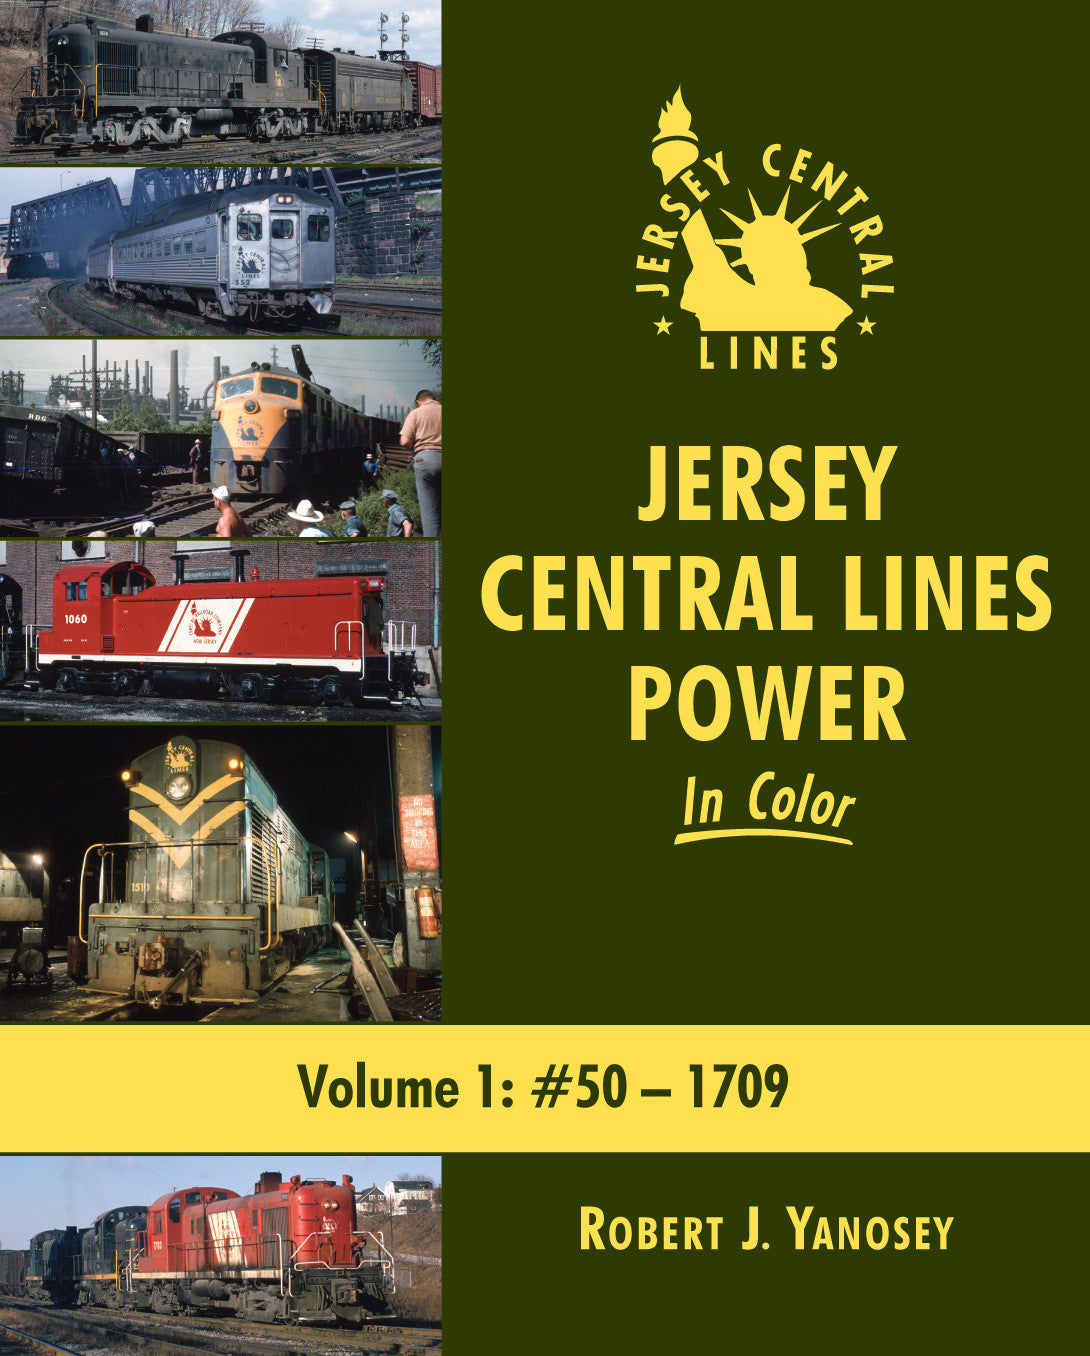 Jersey Central Power In Color Volume 1: #50 1709